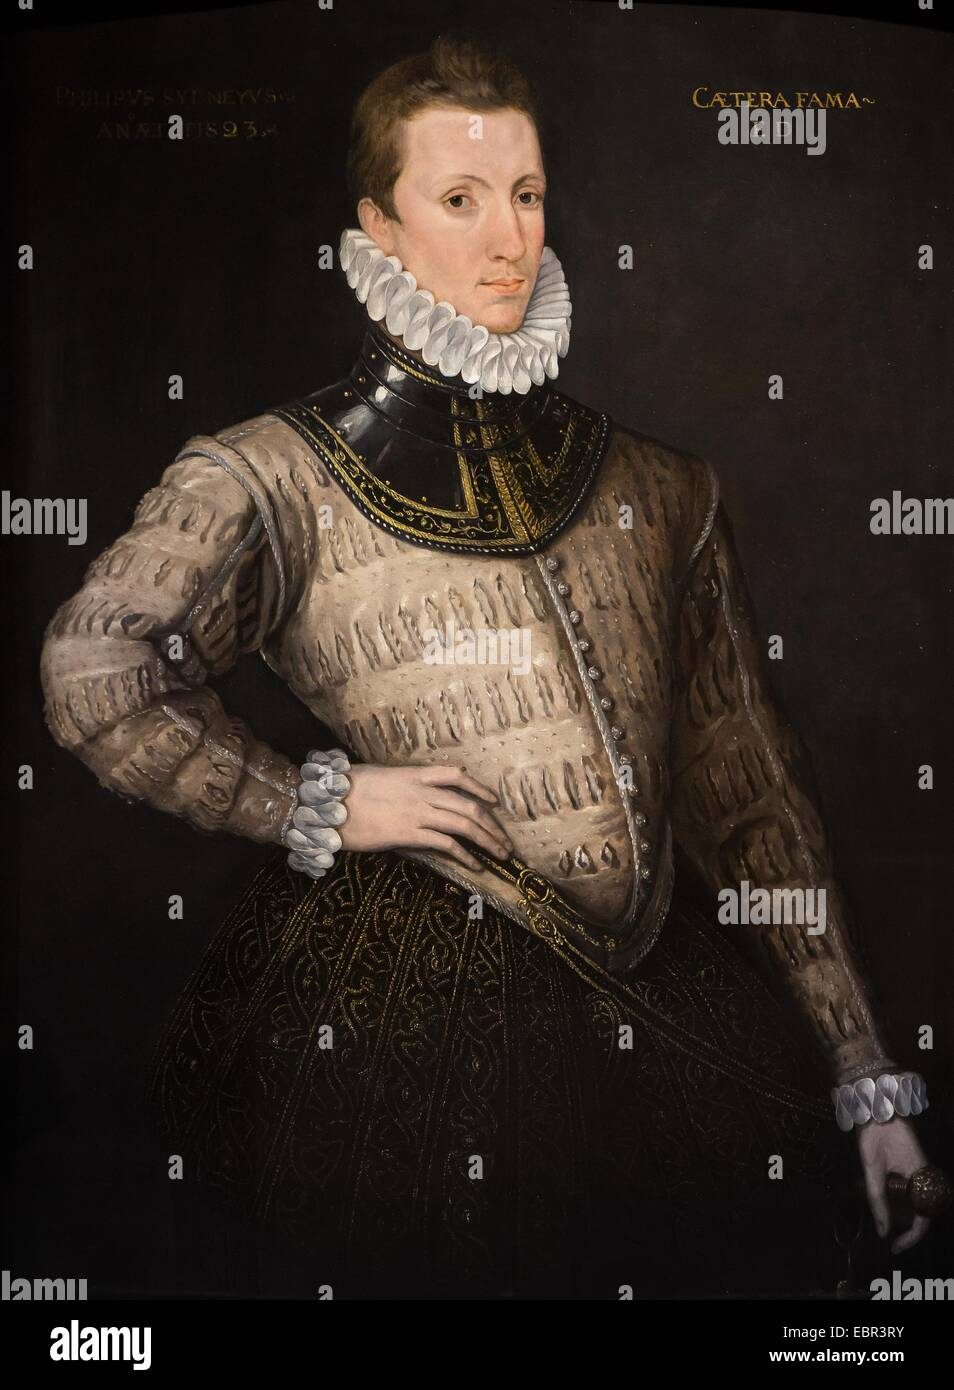 ActiveMuseum_0003639.jpg / Sir Philip Sidney, soldier, diplomat and author, 1576 - unknown artist 22/01/2014  - - Stock Image